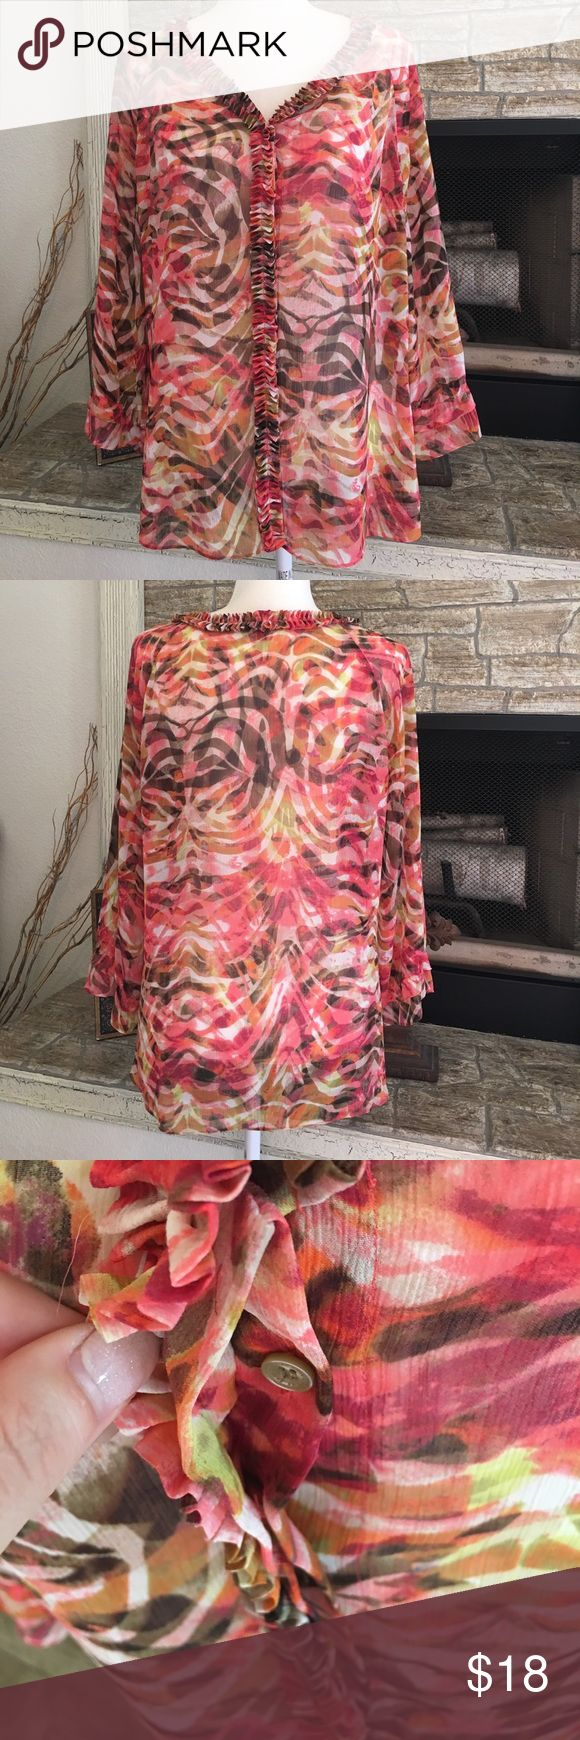 "AK Anne Klein semi sheer top Beautiful multi color design, 100% polyester, machine wash, 22"" armpit to armpit, 27"" shoulder to bottom. Ruffle detail down button line, snap closure at top Anne Klein Tops Button Down Shirts"